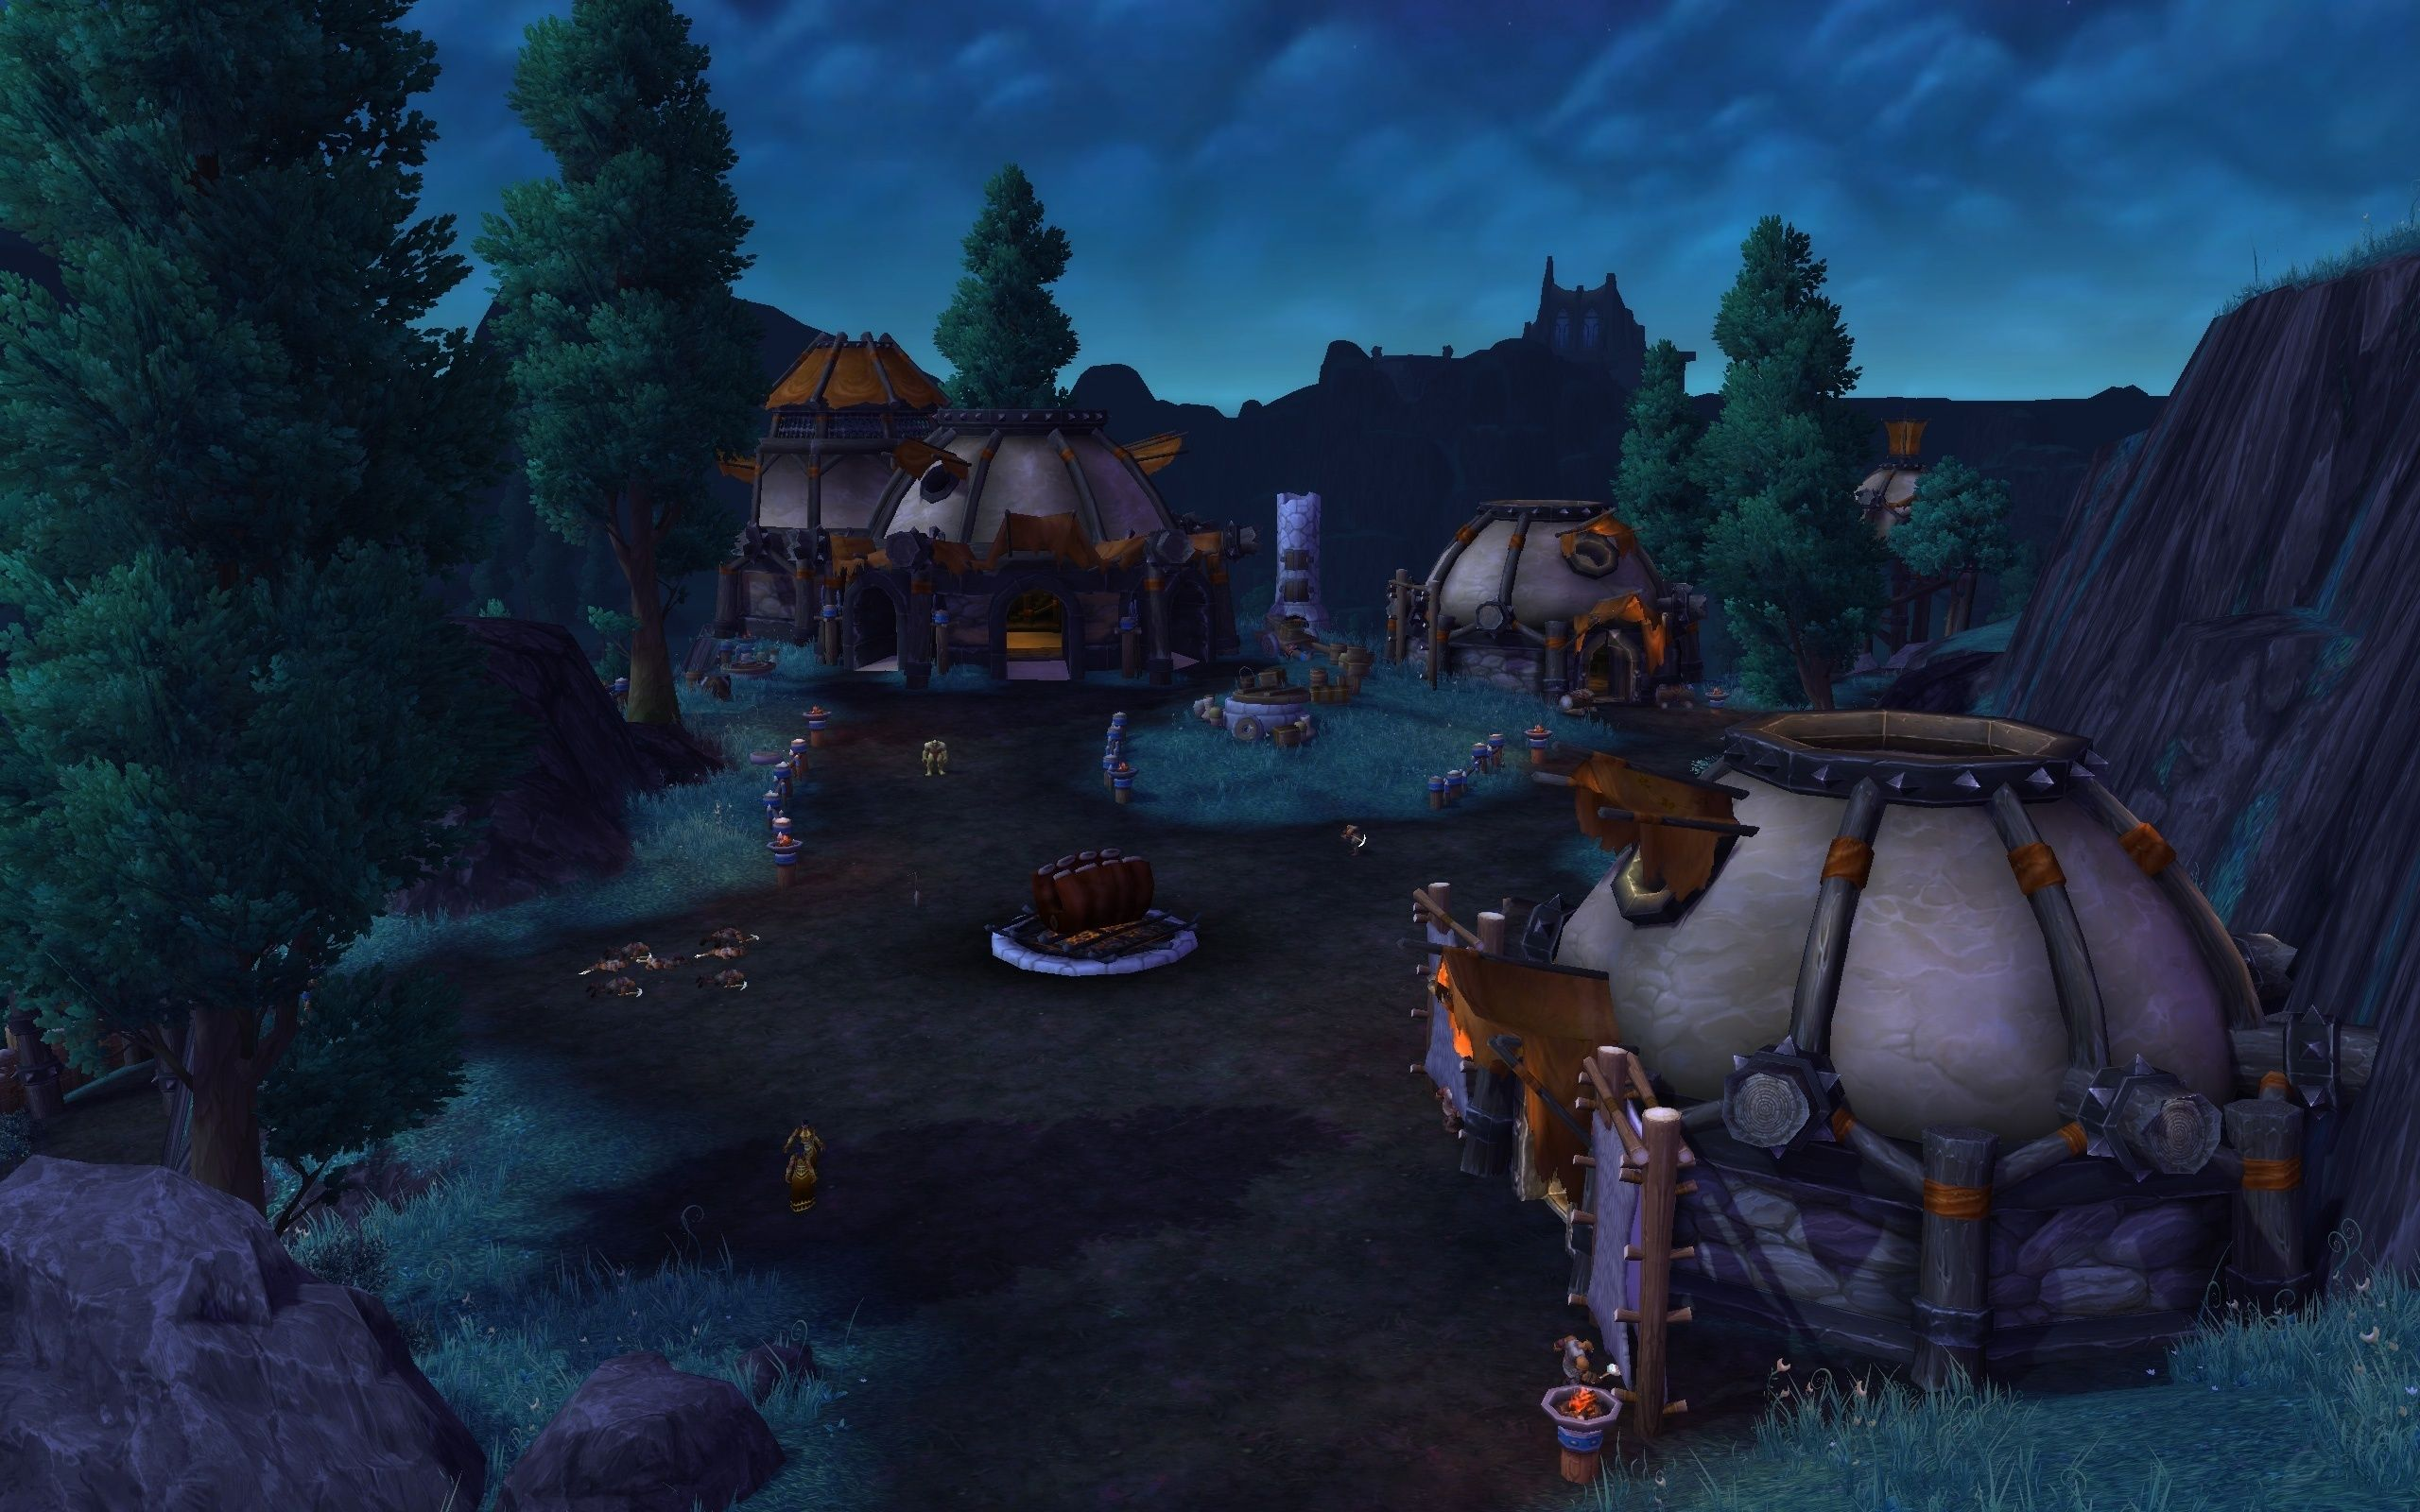 World Of Warcraft Wow Classic Wallpapers World Of Warcraft Warlords Of Draenor World Of Warcraft Characters